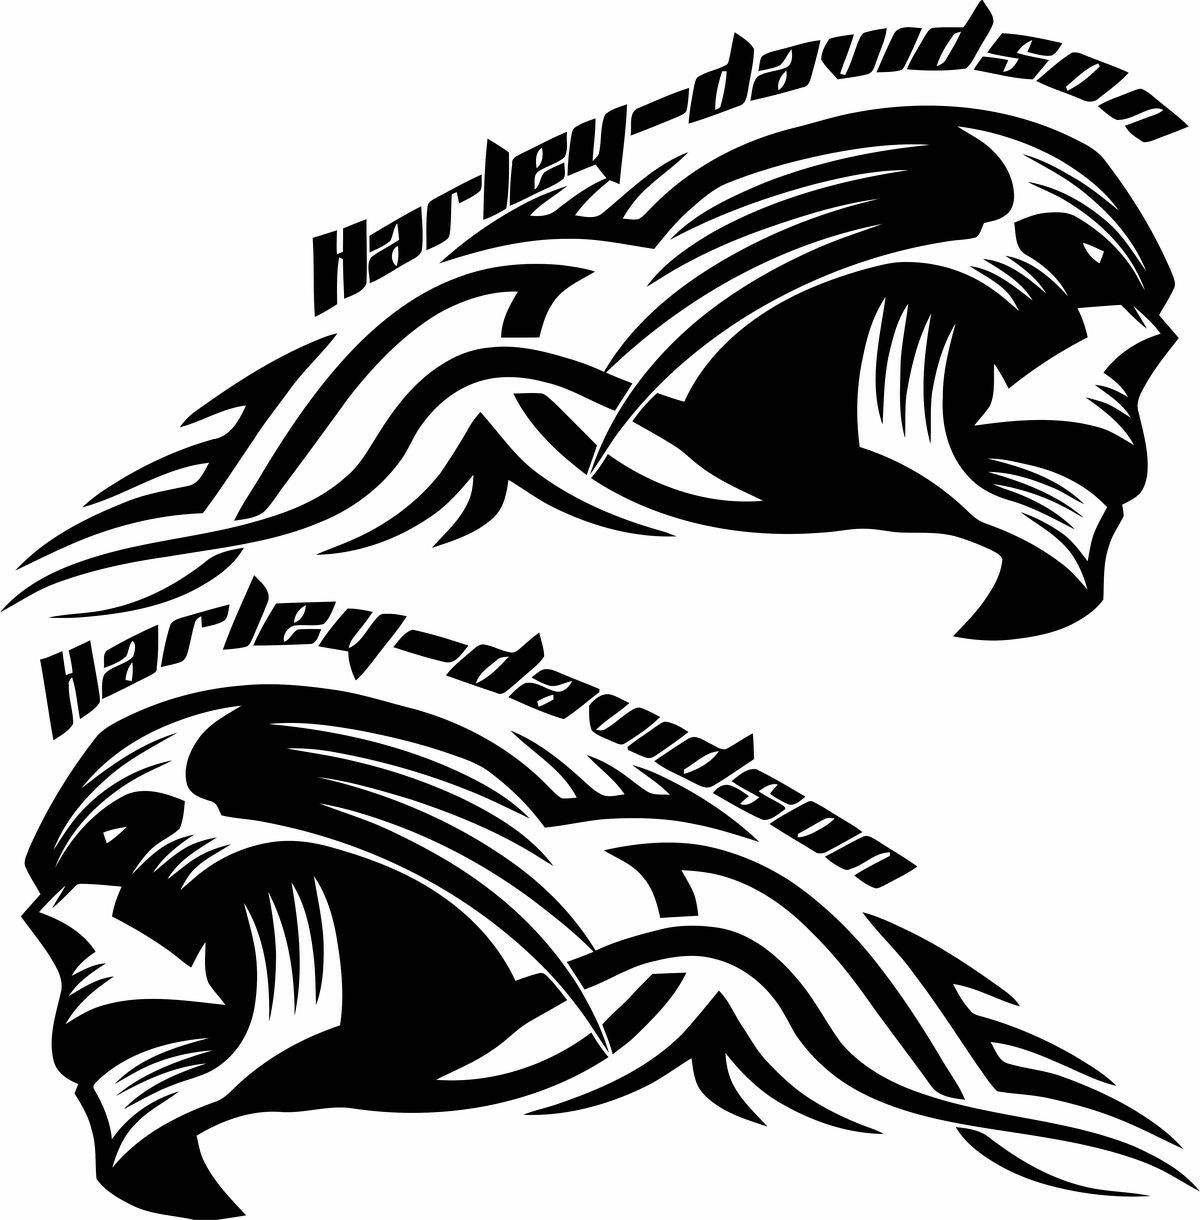 Harley Decals Airbrush Gas Tank Stencils Vinyl Harley Decals - Stickers for motorcycles harley davidsonsmotorcycle decals and stickers